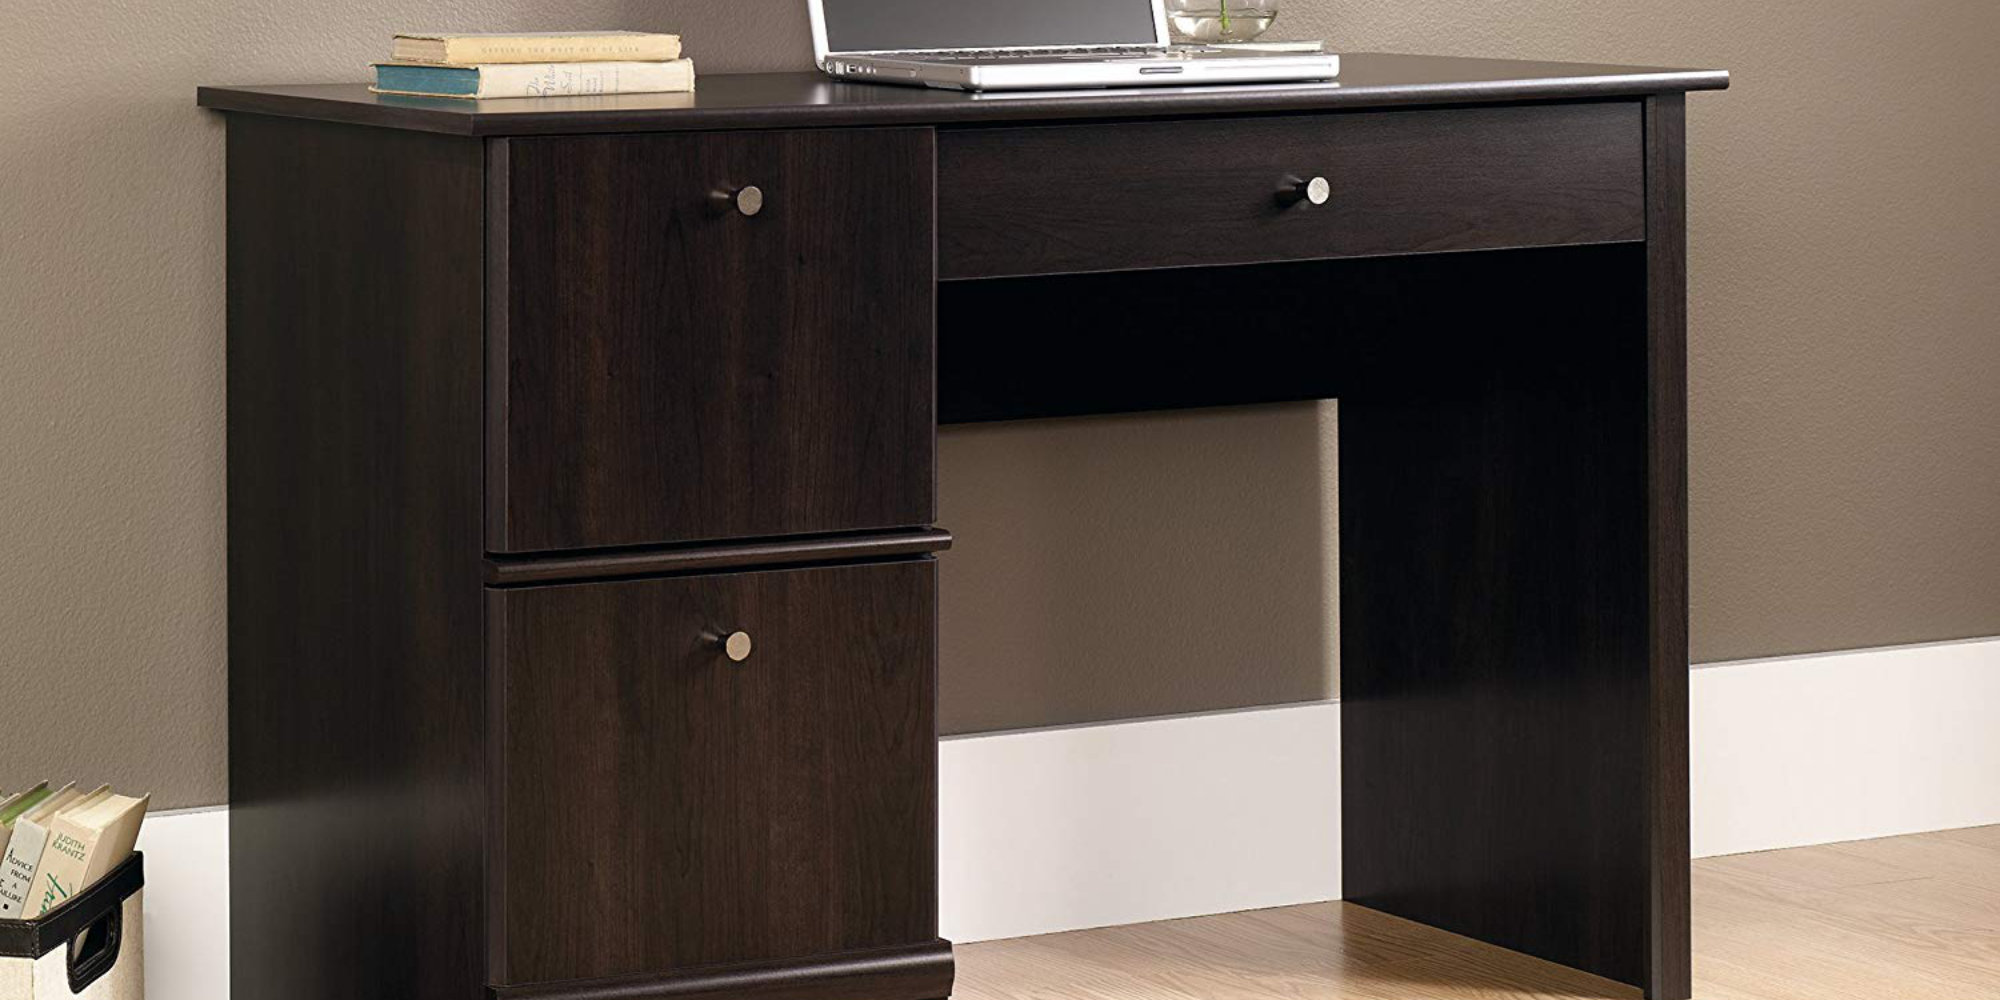 Refresh your office with an affordable Sauder desk for $88 at Amazon - 9to5Toys